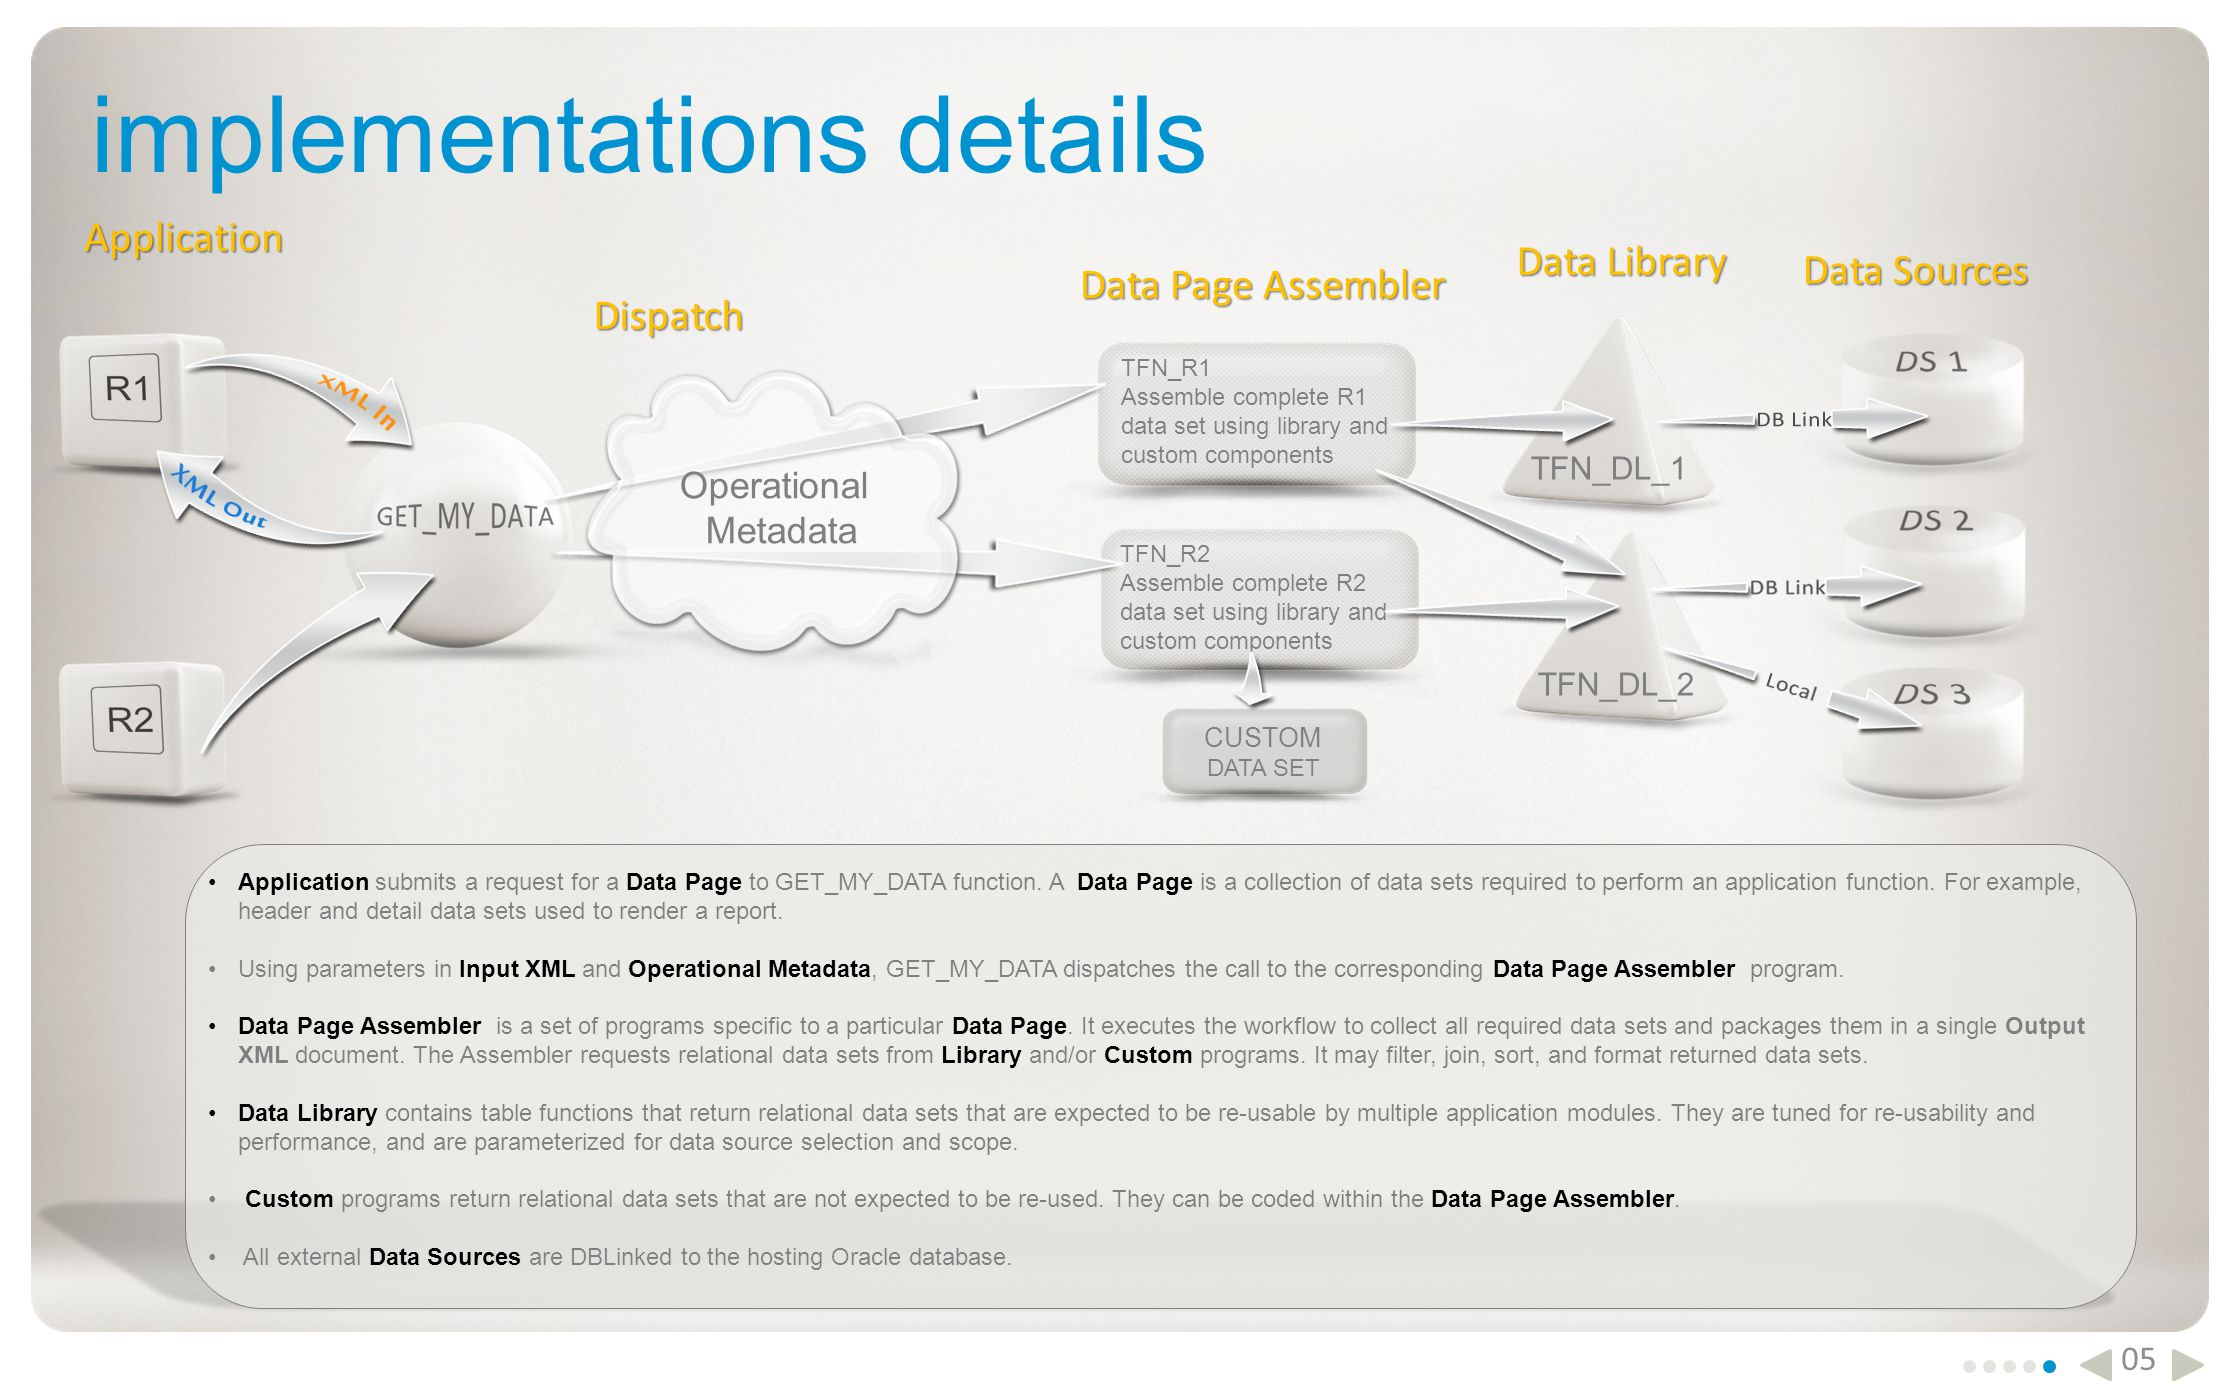 implementations details 05 Application submits a request for a Data Page to GET_MY_DATA function.